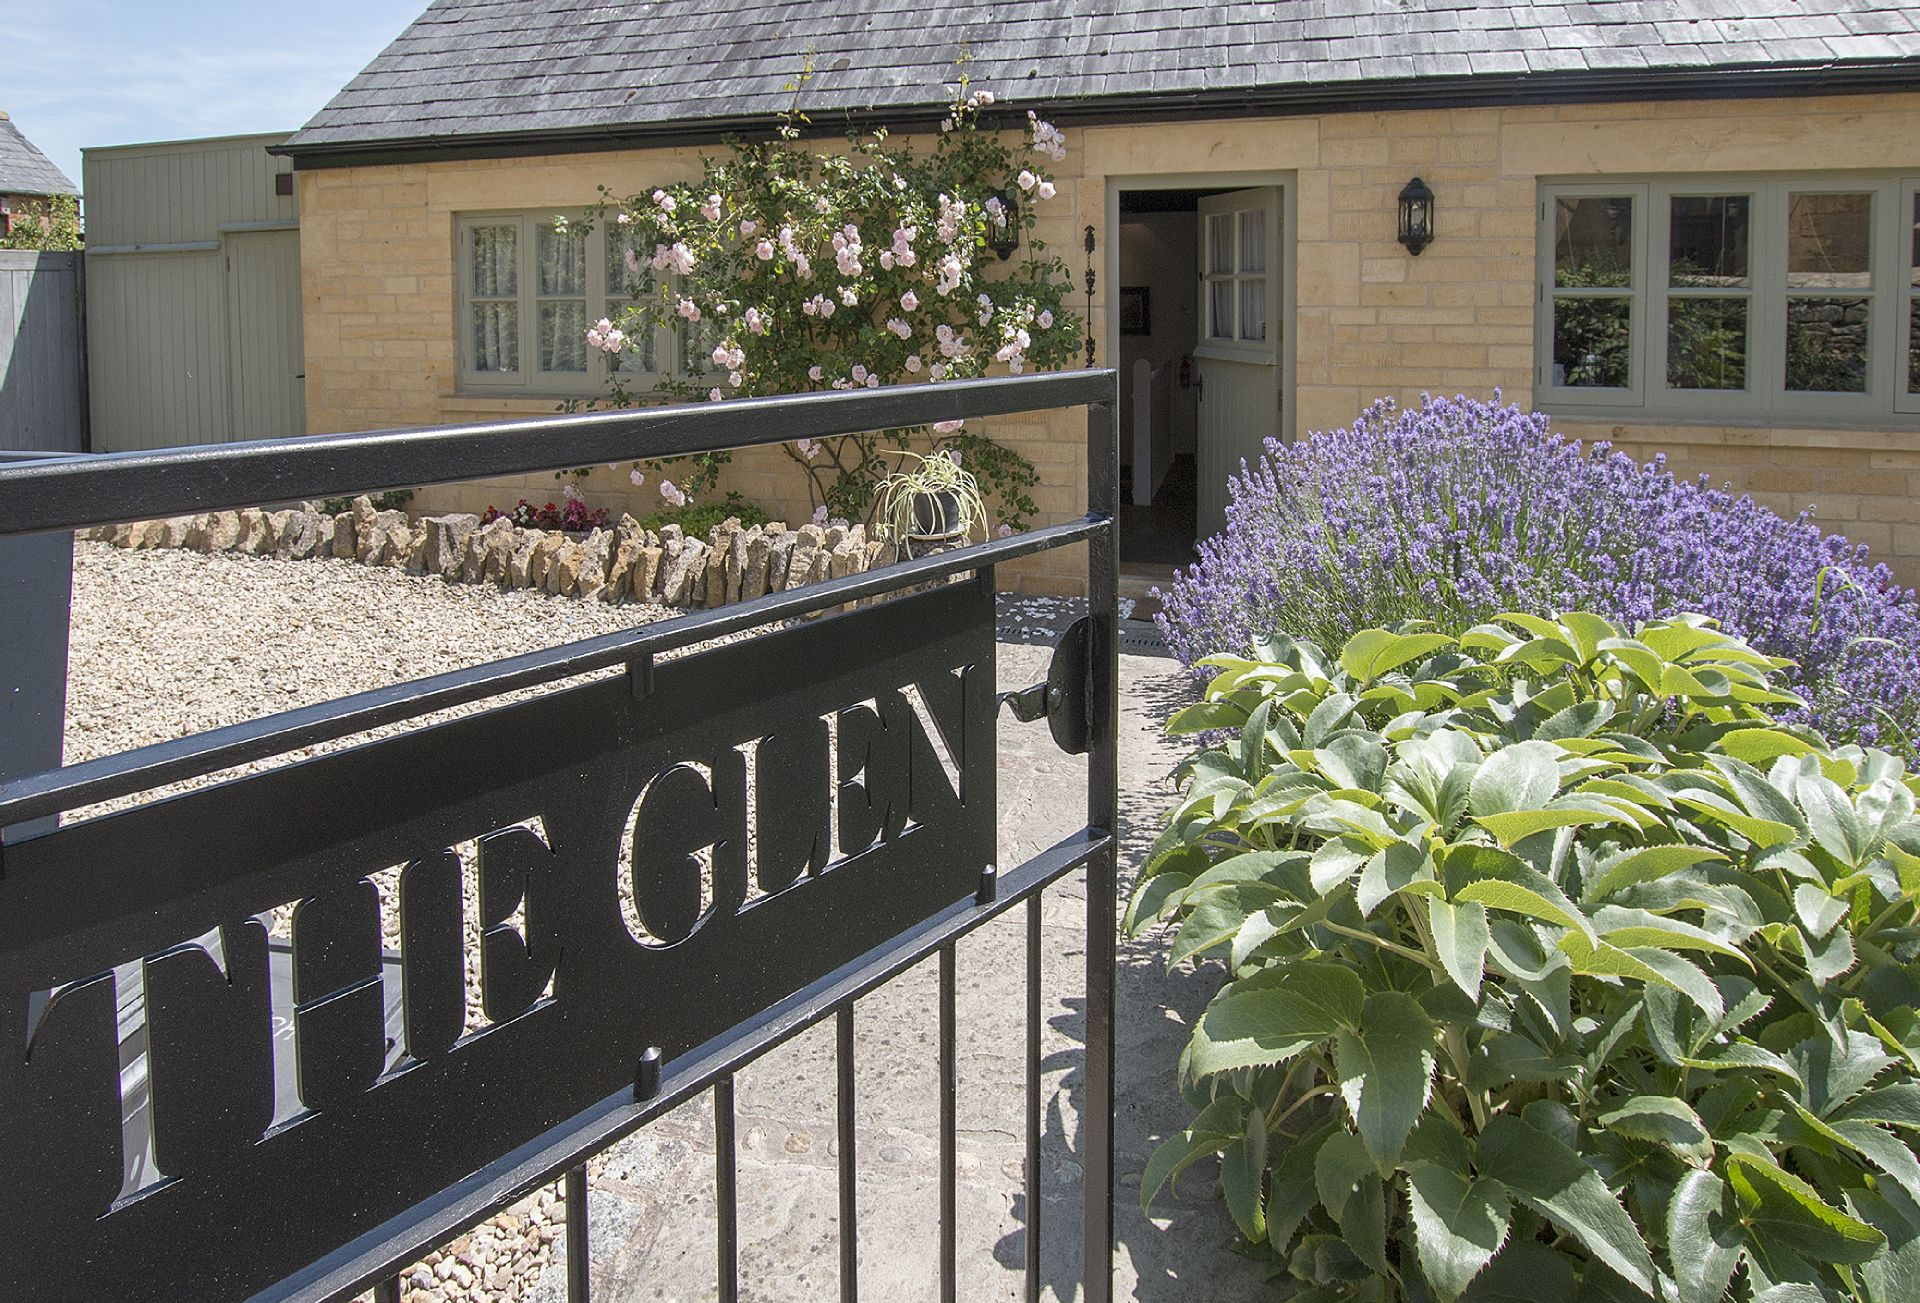 The Glen is a large, spacious family house dating from the early 1800s